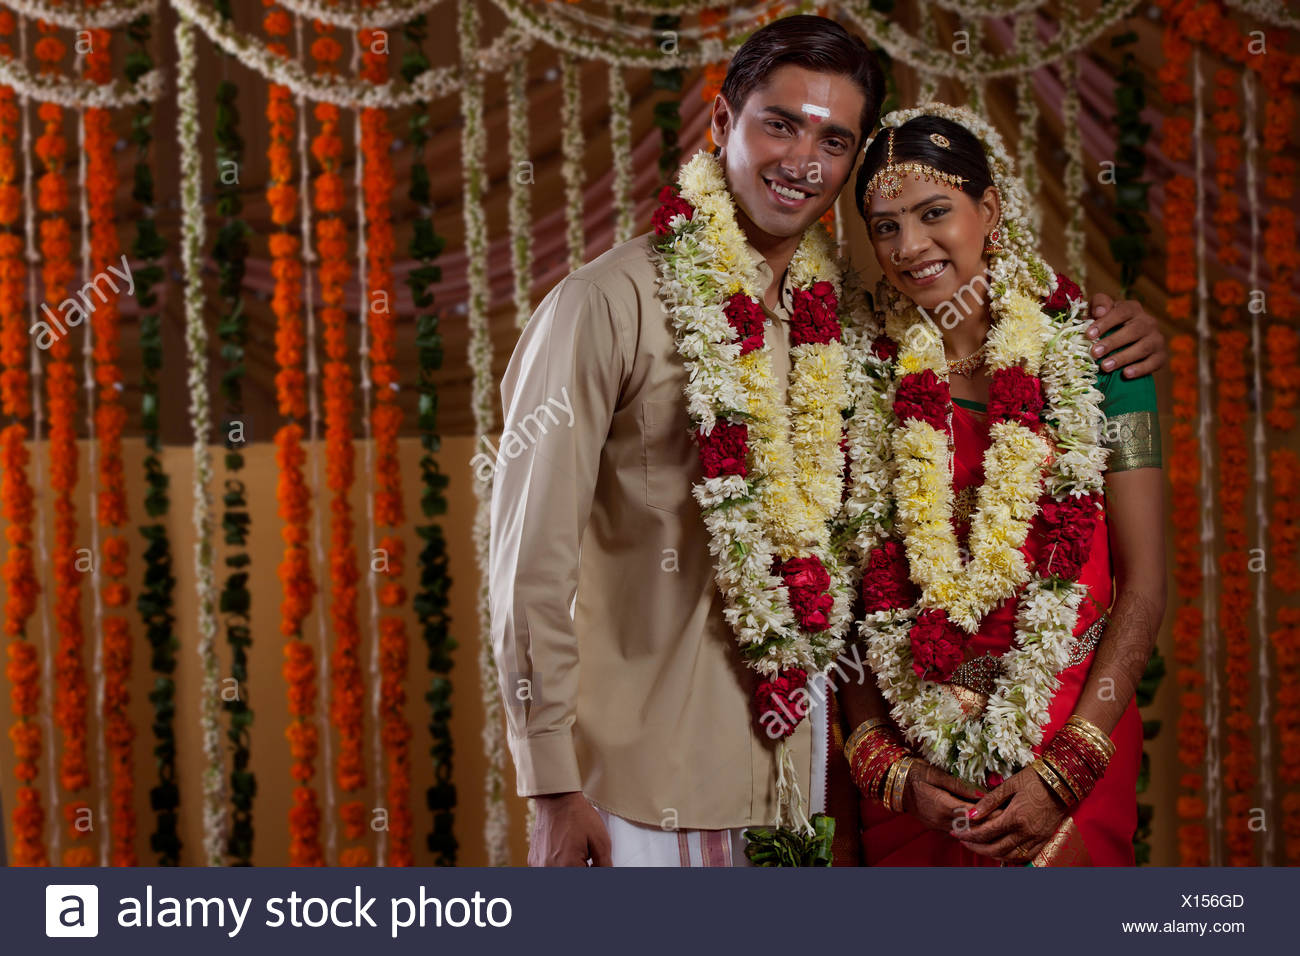 fc1375b62f Portrait of young bride and groom wearing garlands during traditional Indian  wedding